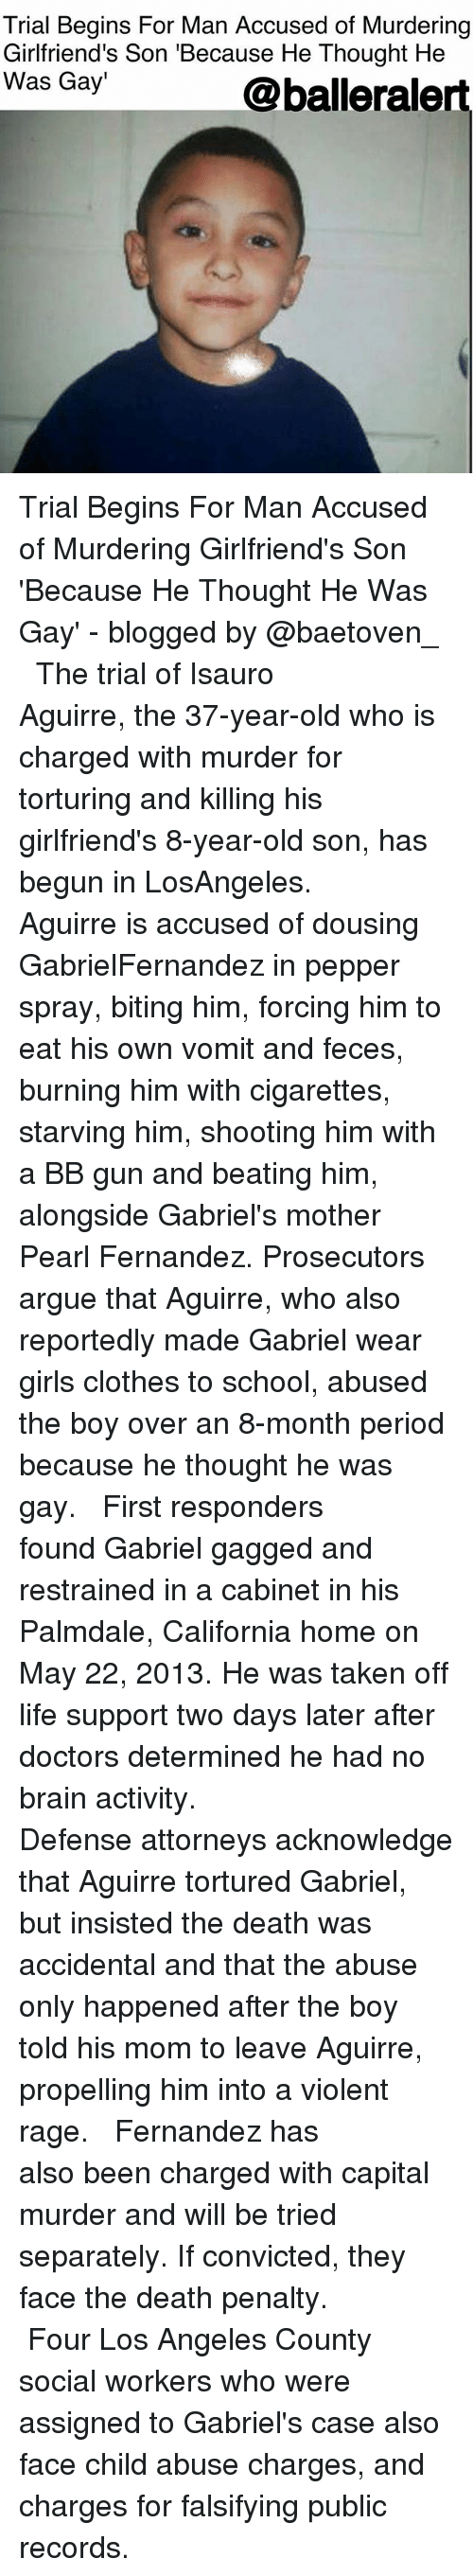 attorneys: Trial Begins For Man Accused of Murdering  Girlfriend's Son 'Because He Thought He  Was Gay'  Qballeralert Trial Begins For Man Accused of Murdering Girlfriend's Son 'Because He Thought He Was Gay' - blogged by @baetoven_ ⠀⠀⠀⠀⠀⠀⠀ ⠀⠀⠀⠀⠀⠀⠀ The trial of Isauro Aguirre, the 37-year-old who is charged with murder for torturing and killing his girlfriend's 8-year-old son, has begun in LosAngeles. ⠀⠀⠀⠀⠀⠀⠀ ⠀⠀⠀⠀⠀⠀⠀ Aguirre is accused of dousing GabrielFernandez in pepper spray, biting him, forcing him to eat his own vomit and feces, burning him with cigarettes, starving him, shooting him with a BB gun and beating him, alongside Gabriel's mother Pearl Fernandez. Prosecutors argue that Aguirre, who also reportedly made Gabriel wear girls clothes to school, abused the boy over an 8-month period because he thought he was gay. ⠀⠀⠀⠀⠀⠀⠀ ⠀⠀⠀⠀⠀⠀⠀ First responders found Gabriel gagged and restrained in a cabinet in his Palmdale, California home on May 22, 2013. He was taken off life support two days later after doctors determined he had no brain activity. ⠀⠀⠀⠀⠀⠀⠀ ⠀⠀⠀⠀⠀⠀⠀ Defense attorneys acknowledge that Aguirre tortured Gabriel, but insisted the death was accidental and that the abuse only happened after the boy told his mom to leave Aguirre, propelling him into a violent rage. ⠀⠀⠀⠀⠀⠀⠀ ⠀⠀⠀⠀⠀⠀⠀ Fernandez has also been charged with capital murder and will be tried separately. If convicted, they face the death penalty. ⠀⠀⠀⠀⠀⠀⠀ ⠀⠀⠀⠀⠀⠀⠀ Four Los Angeles County social workers who were assigned to Gabriel's case also face child abuse charges, and charges for falsifying public records.